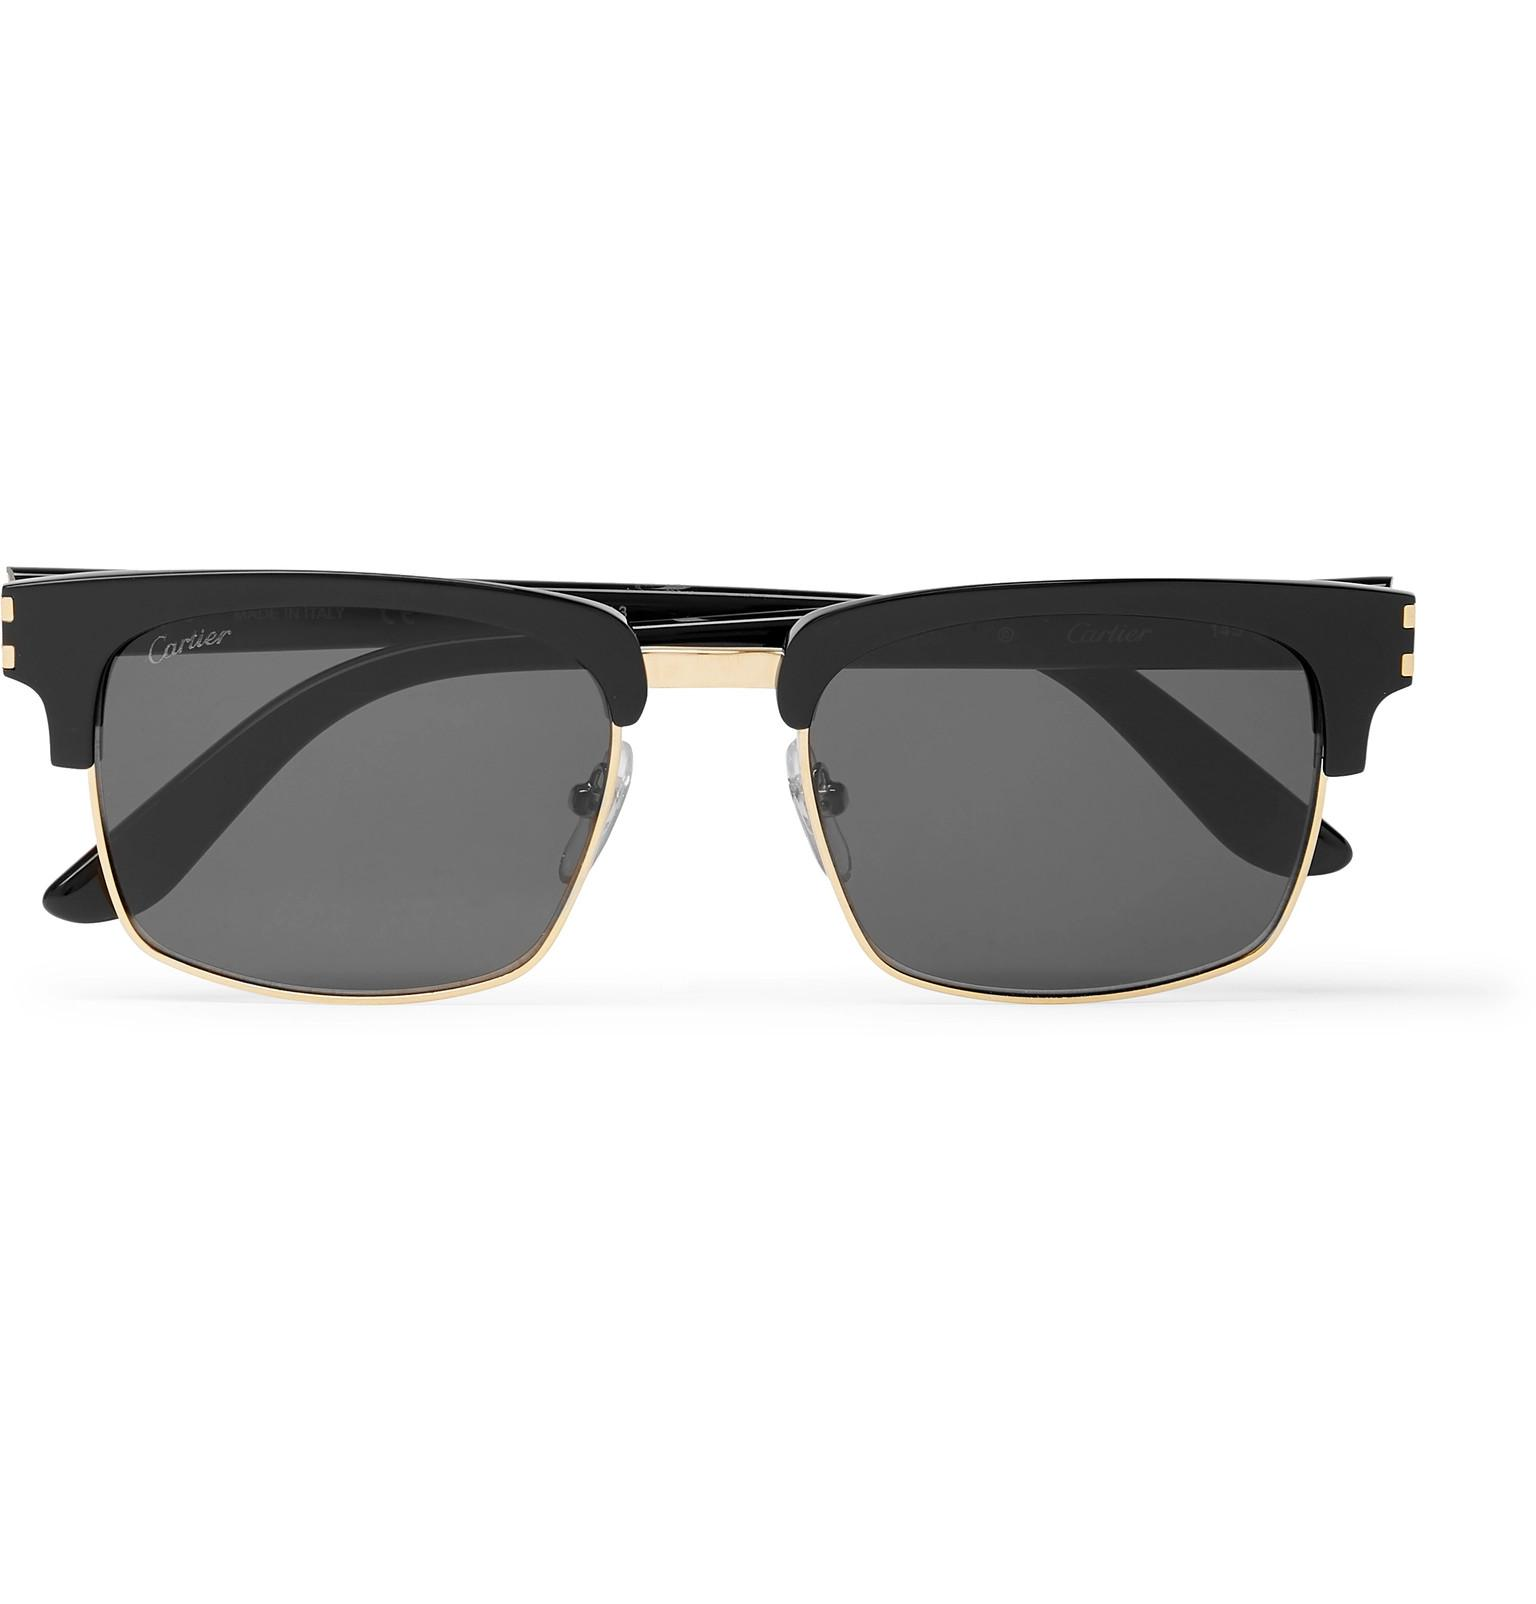 f11d039ee1 Cartier - Black Square-frame Acetate And Gold-tone Sunglasses for Men -  Lyst. View fullscreen